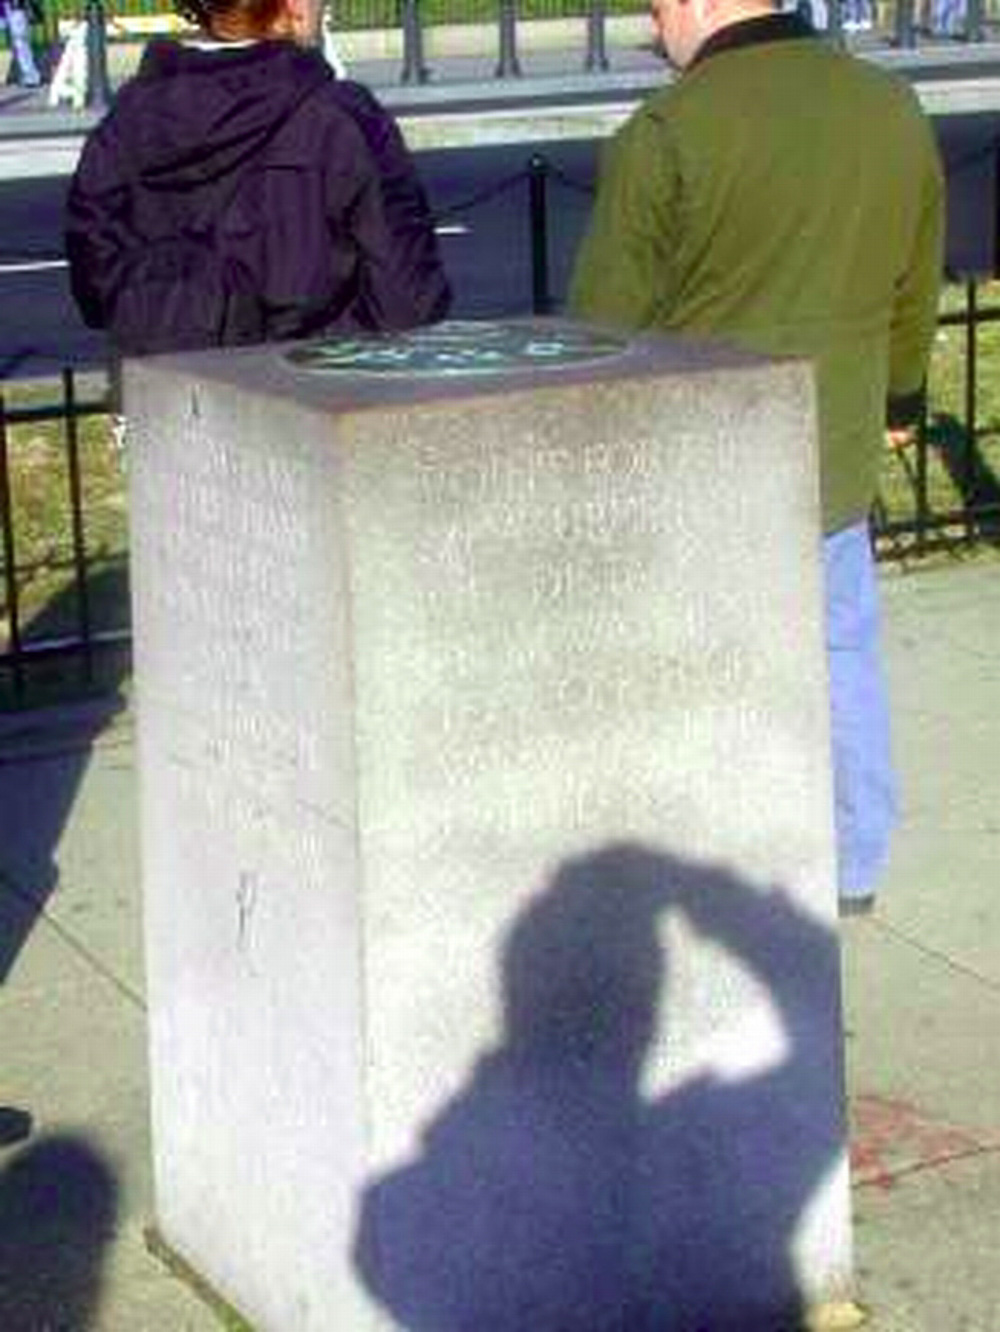 Washington DC, Zero milestone